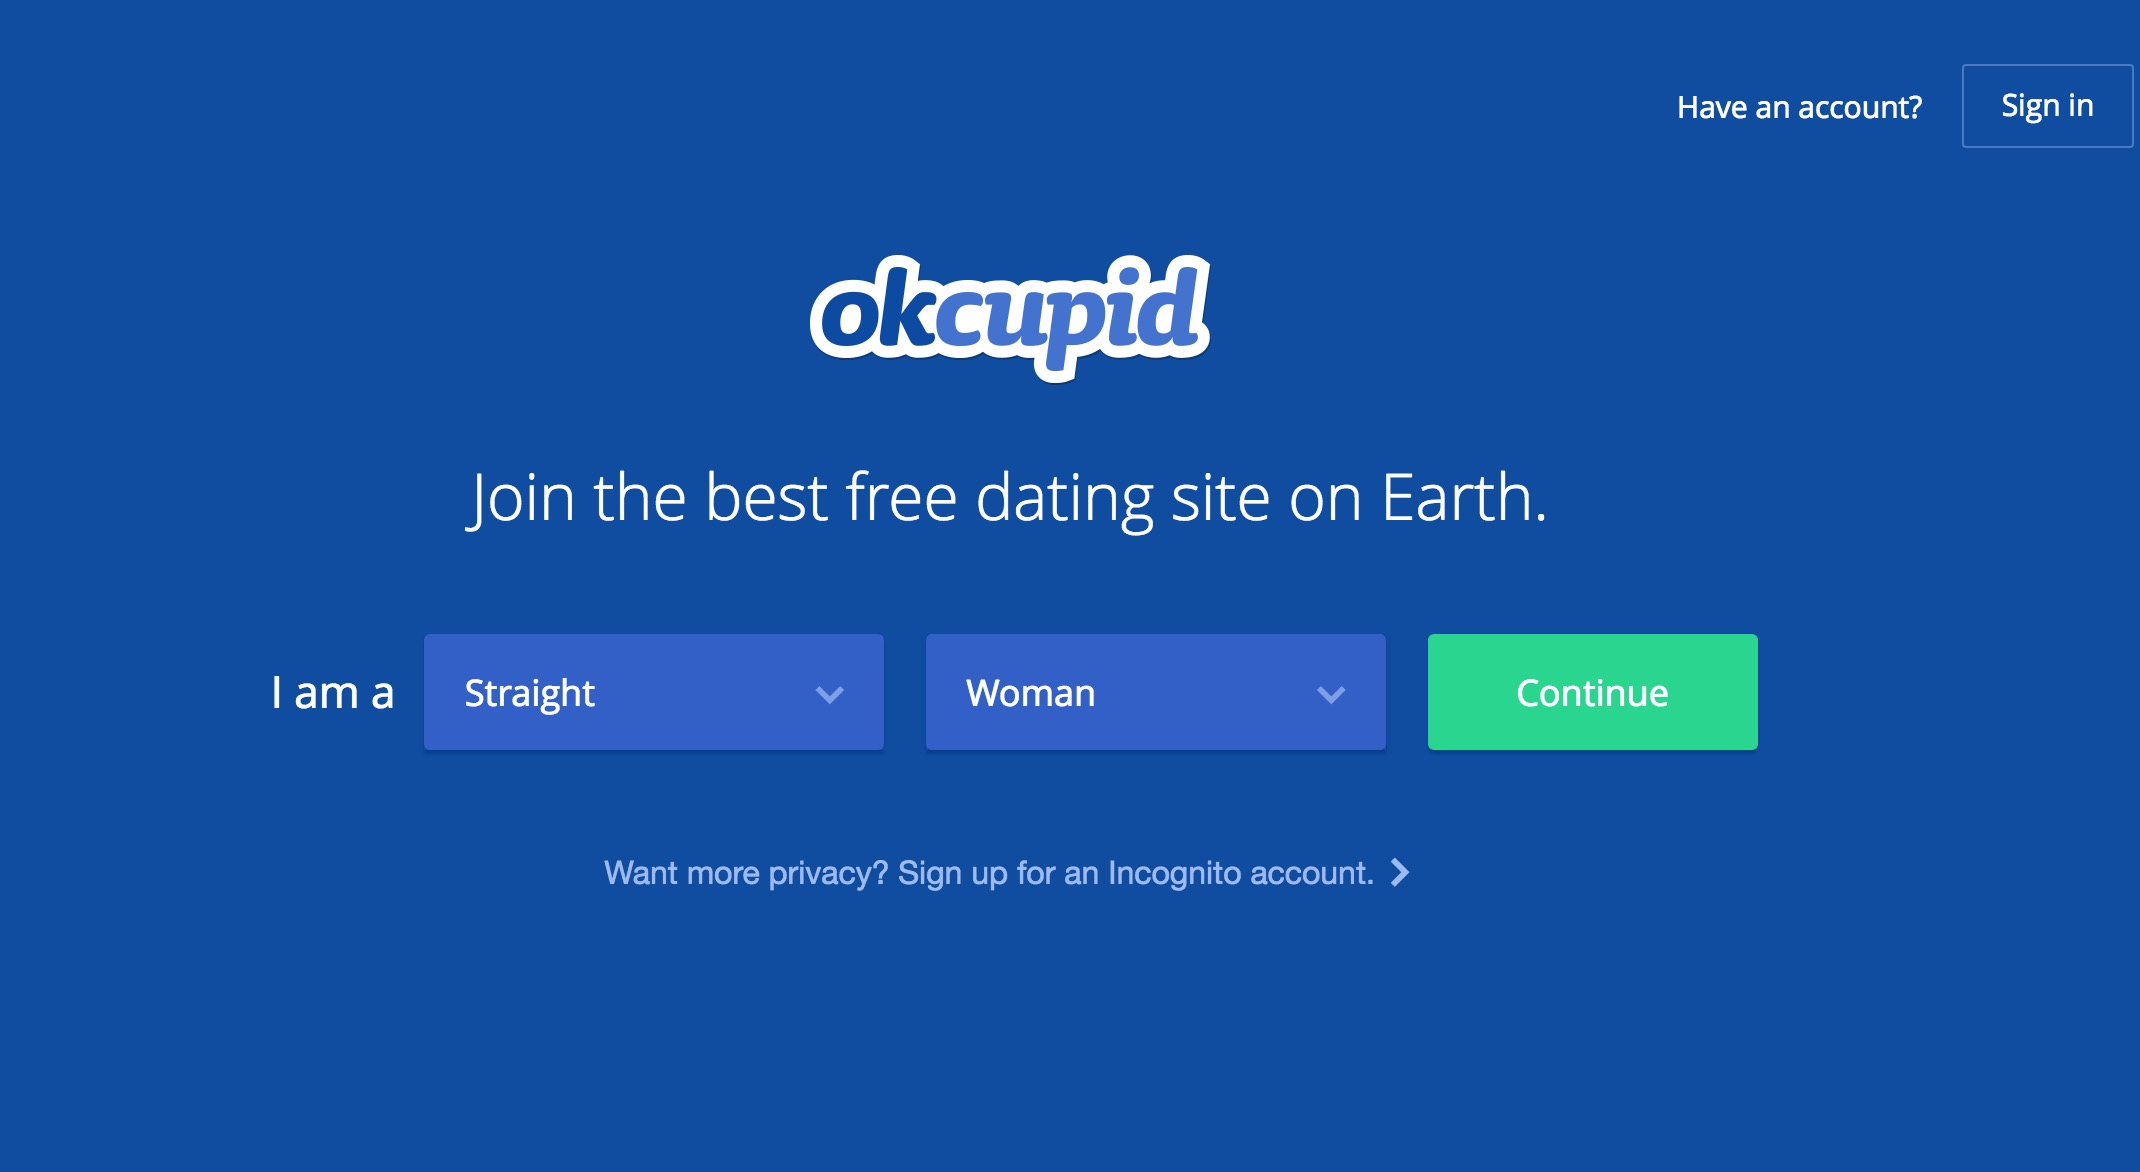 Absolutely 100 percent free dating sites